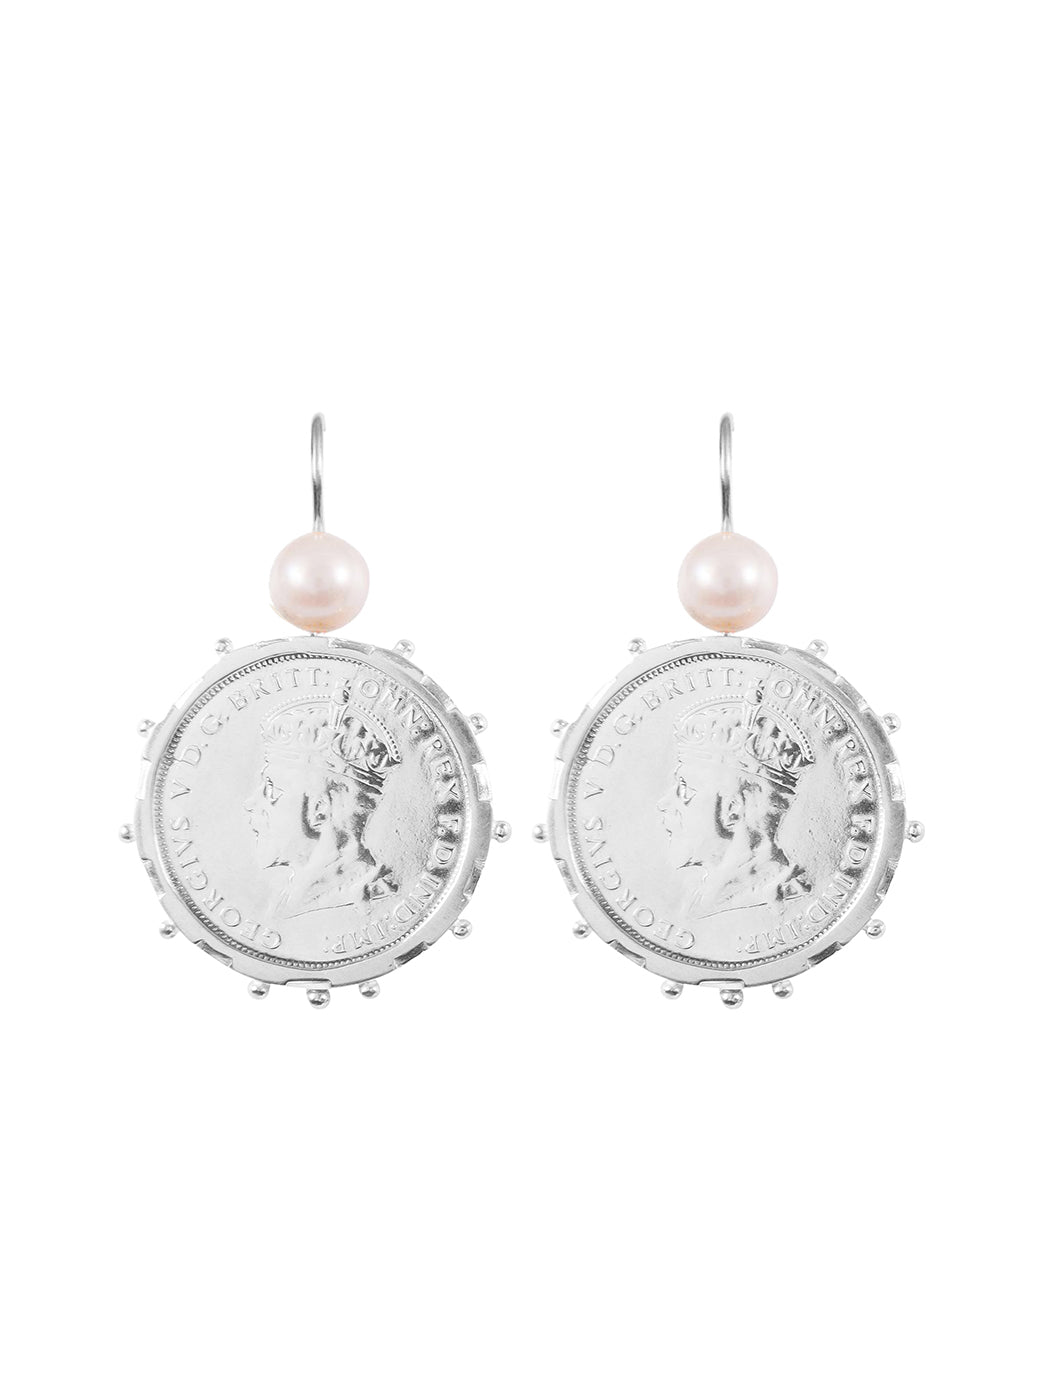 Fiorina Jewellery Silver Encased Parliament Earrings Pearl Highlights